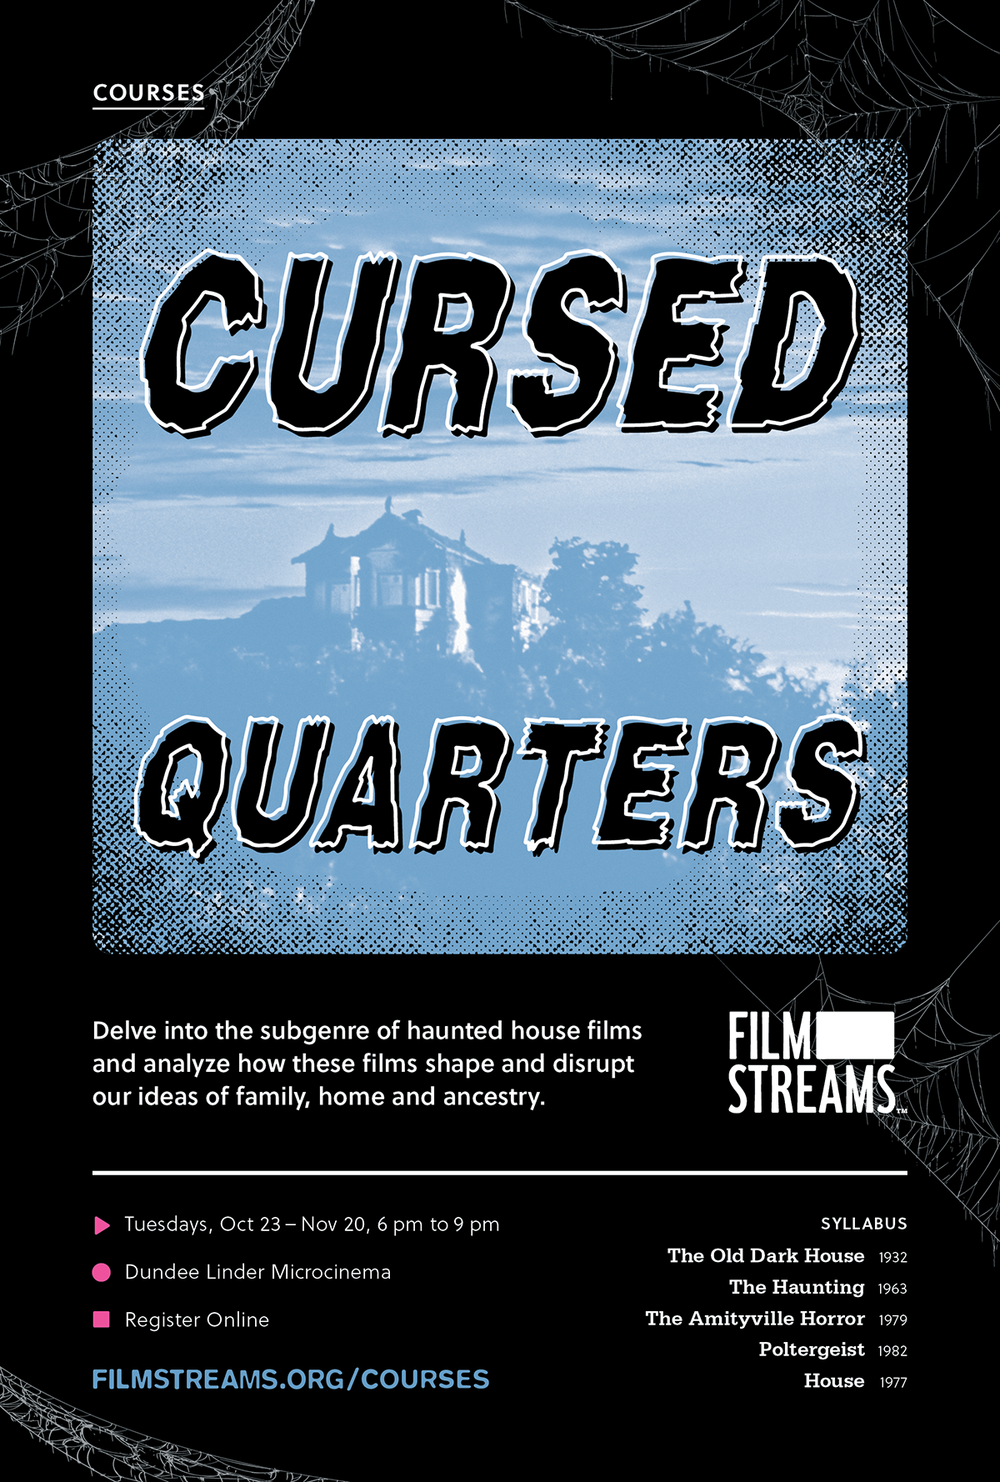 jkdc_filmstreams-courses-cursedquarters.png